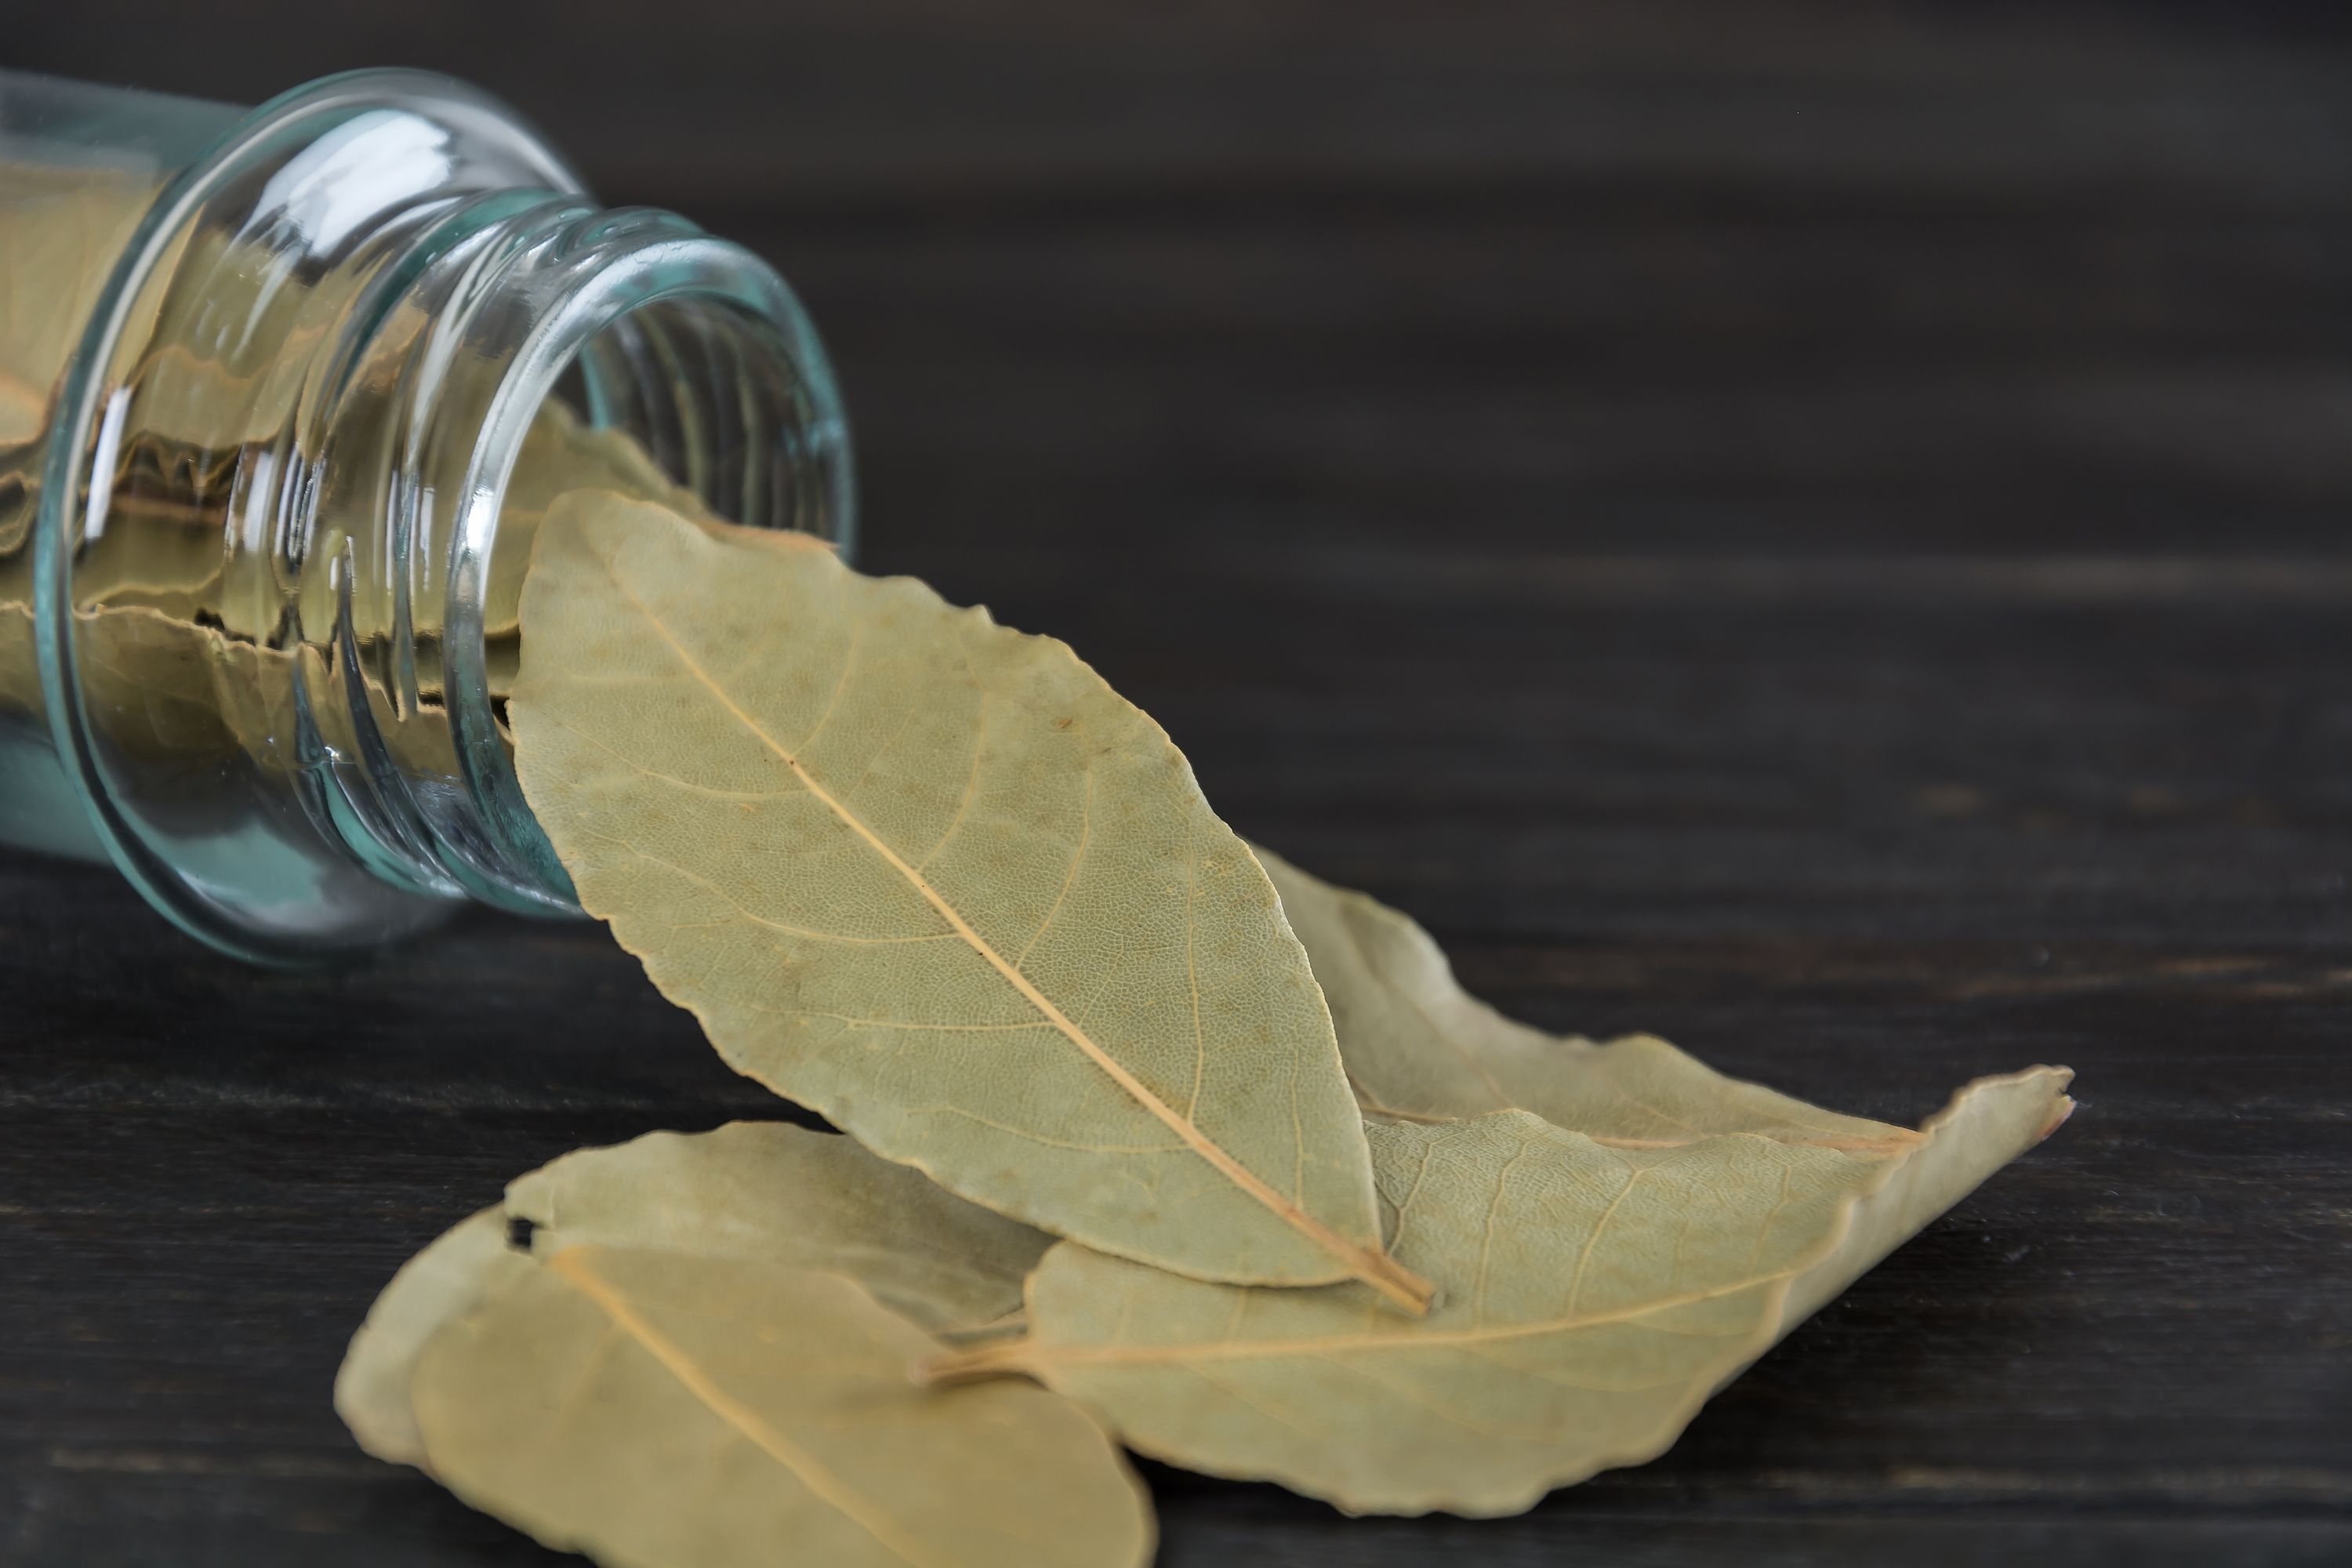 What's the Deal with Bay Leaves and Do You Actually Have to Use Them?